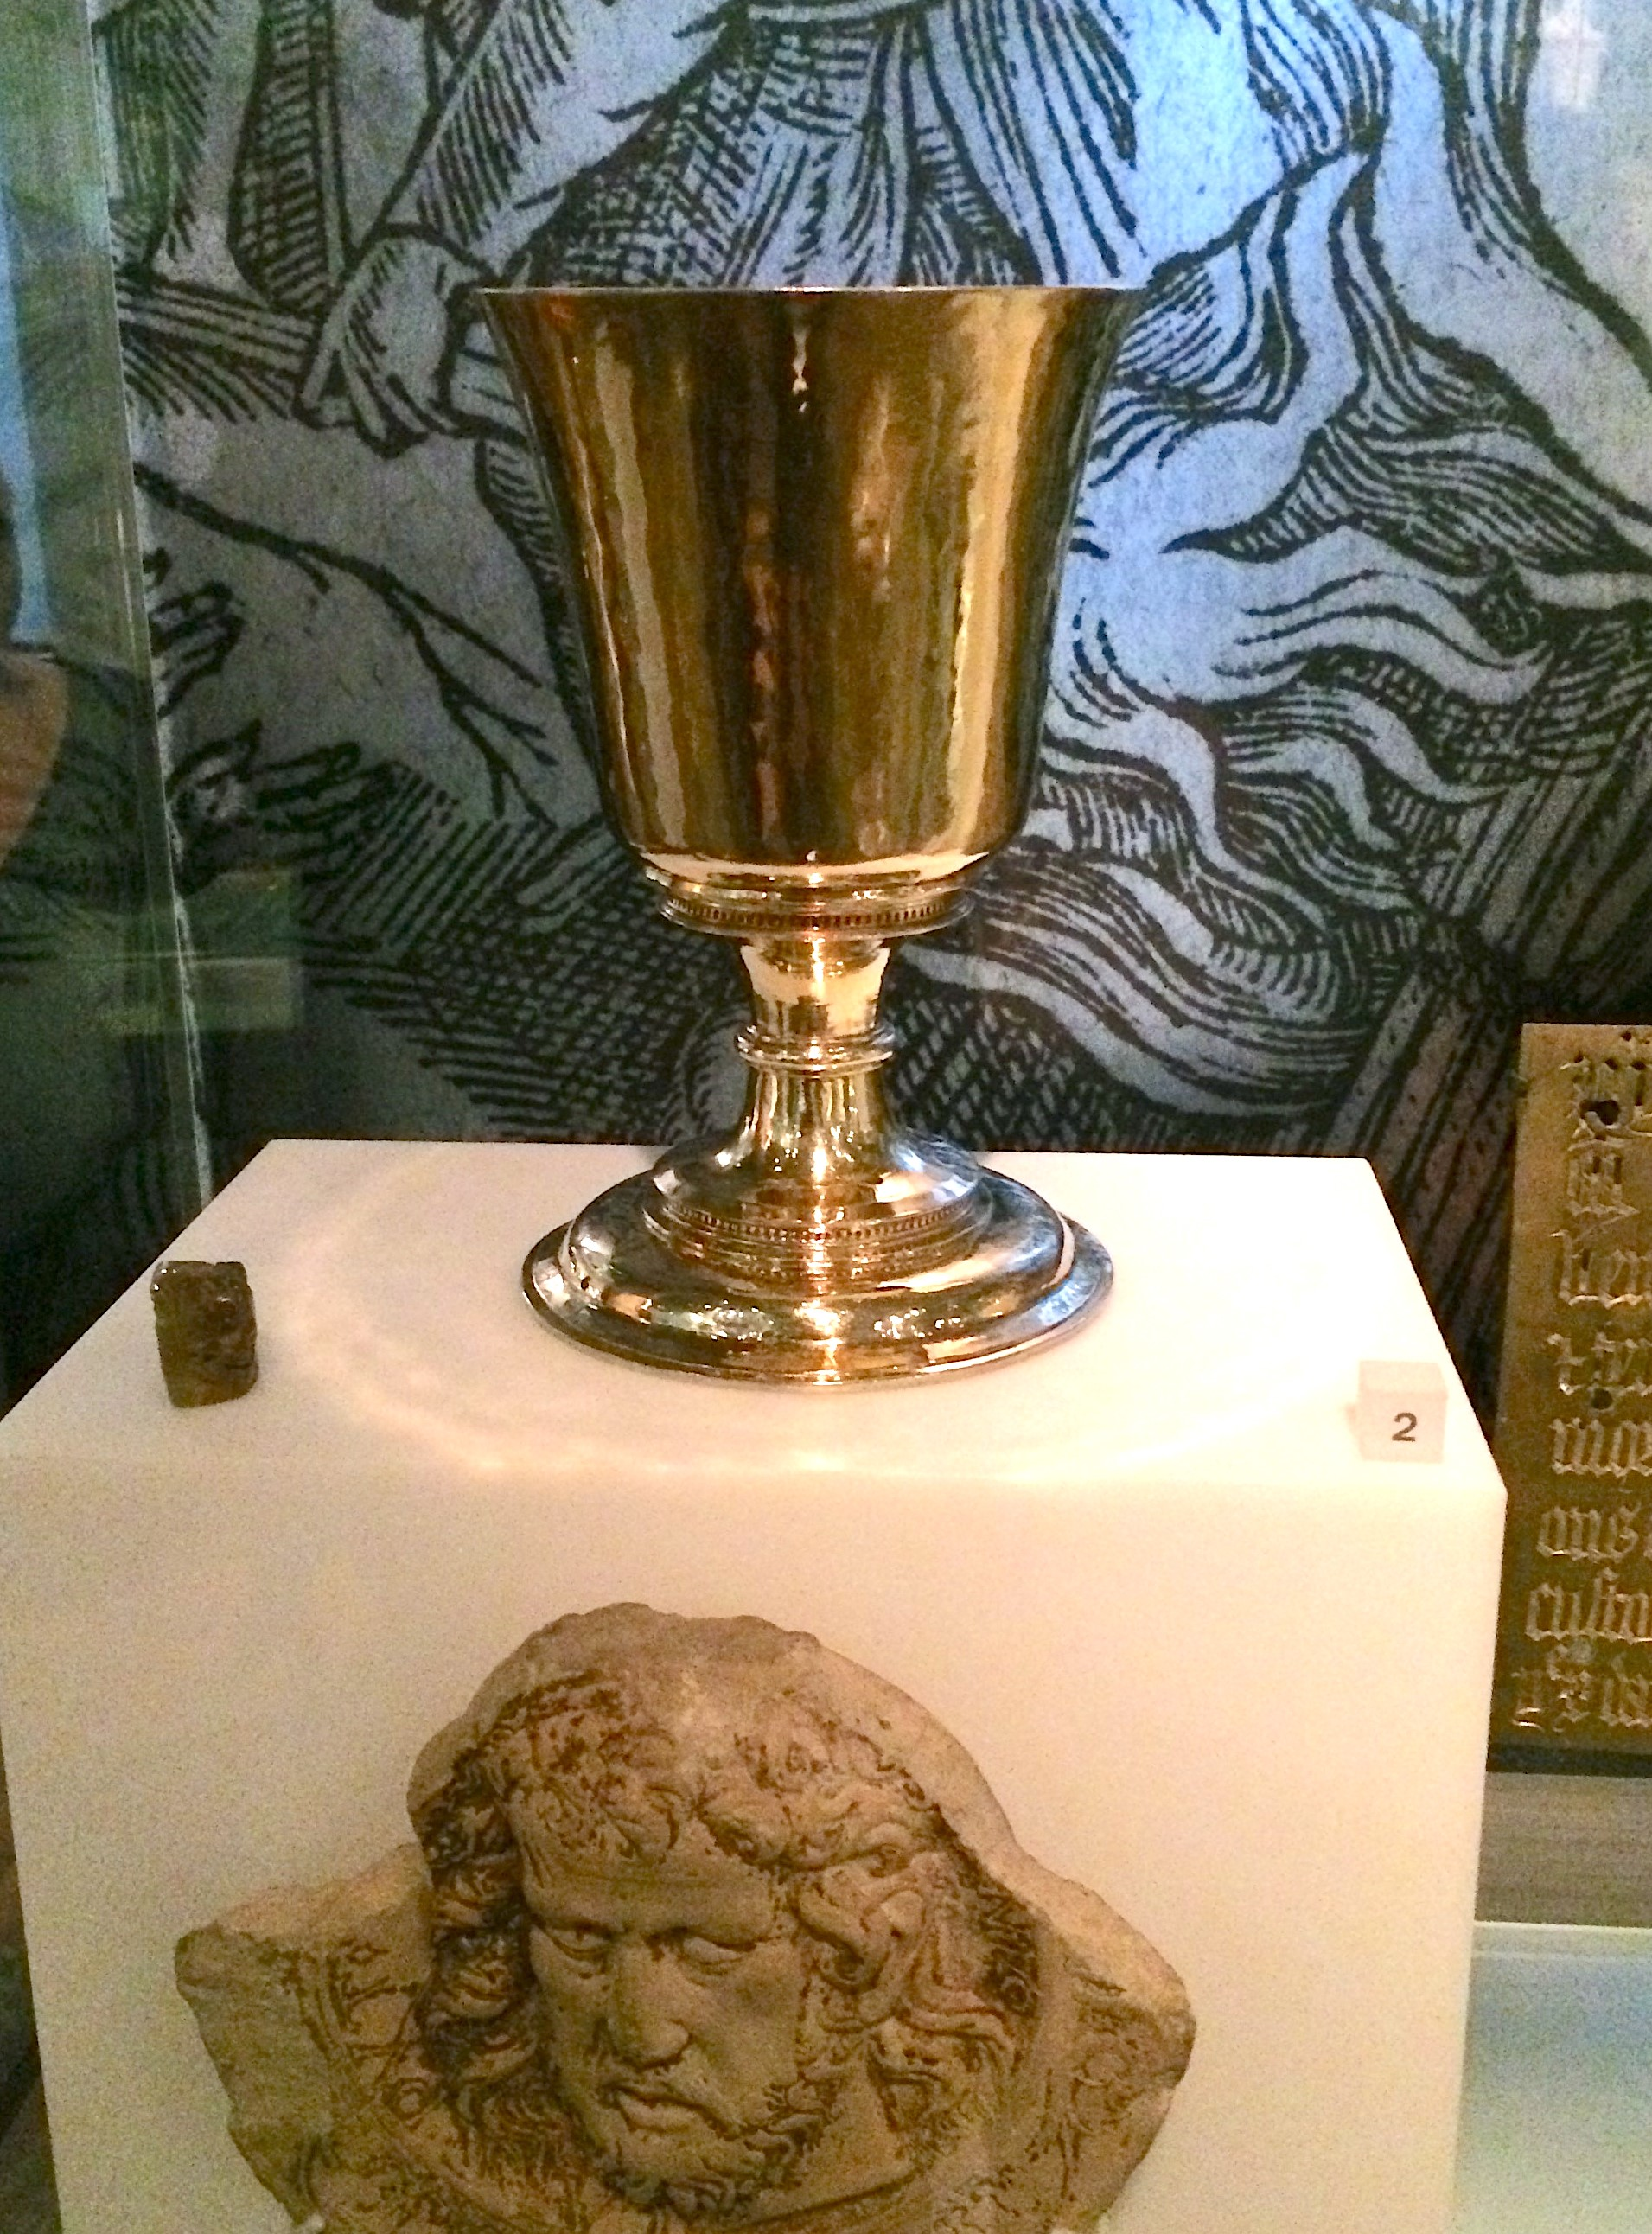 A gold chalice on display at the Museum of London